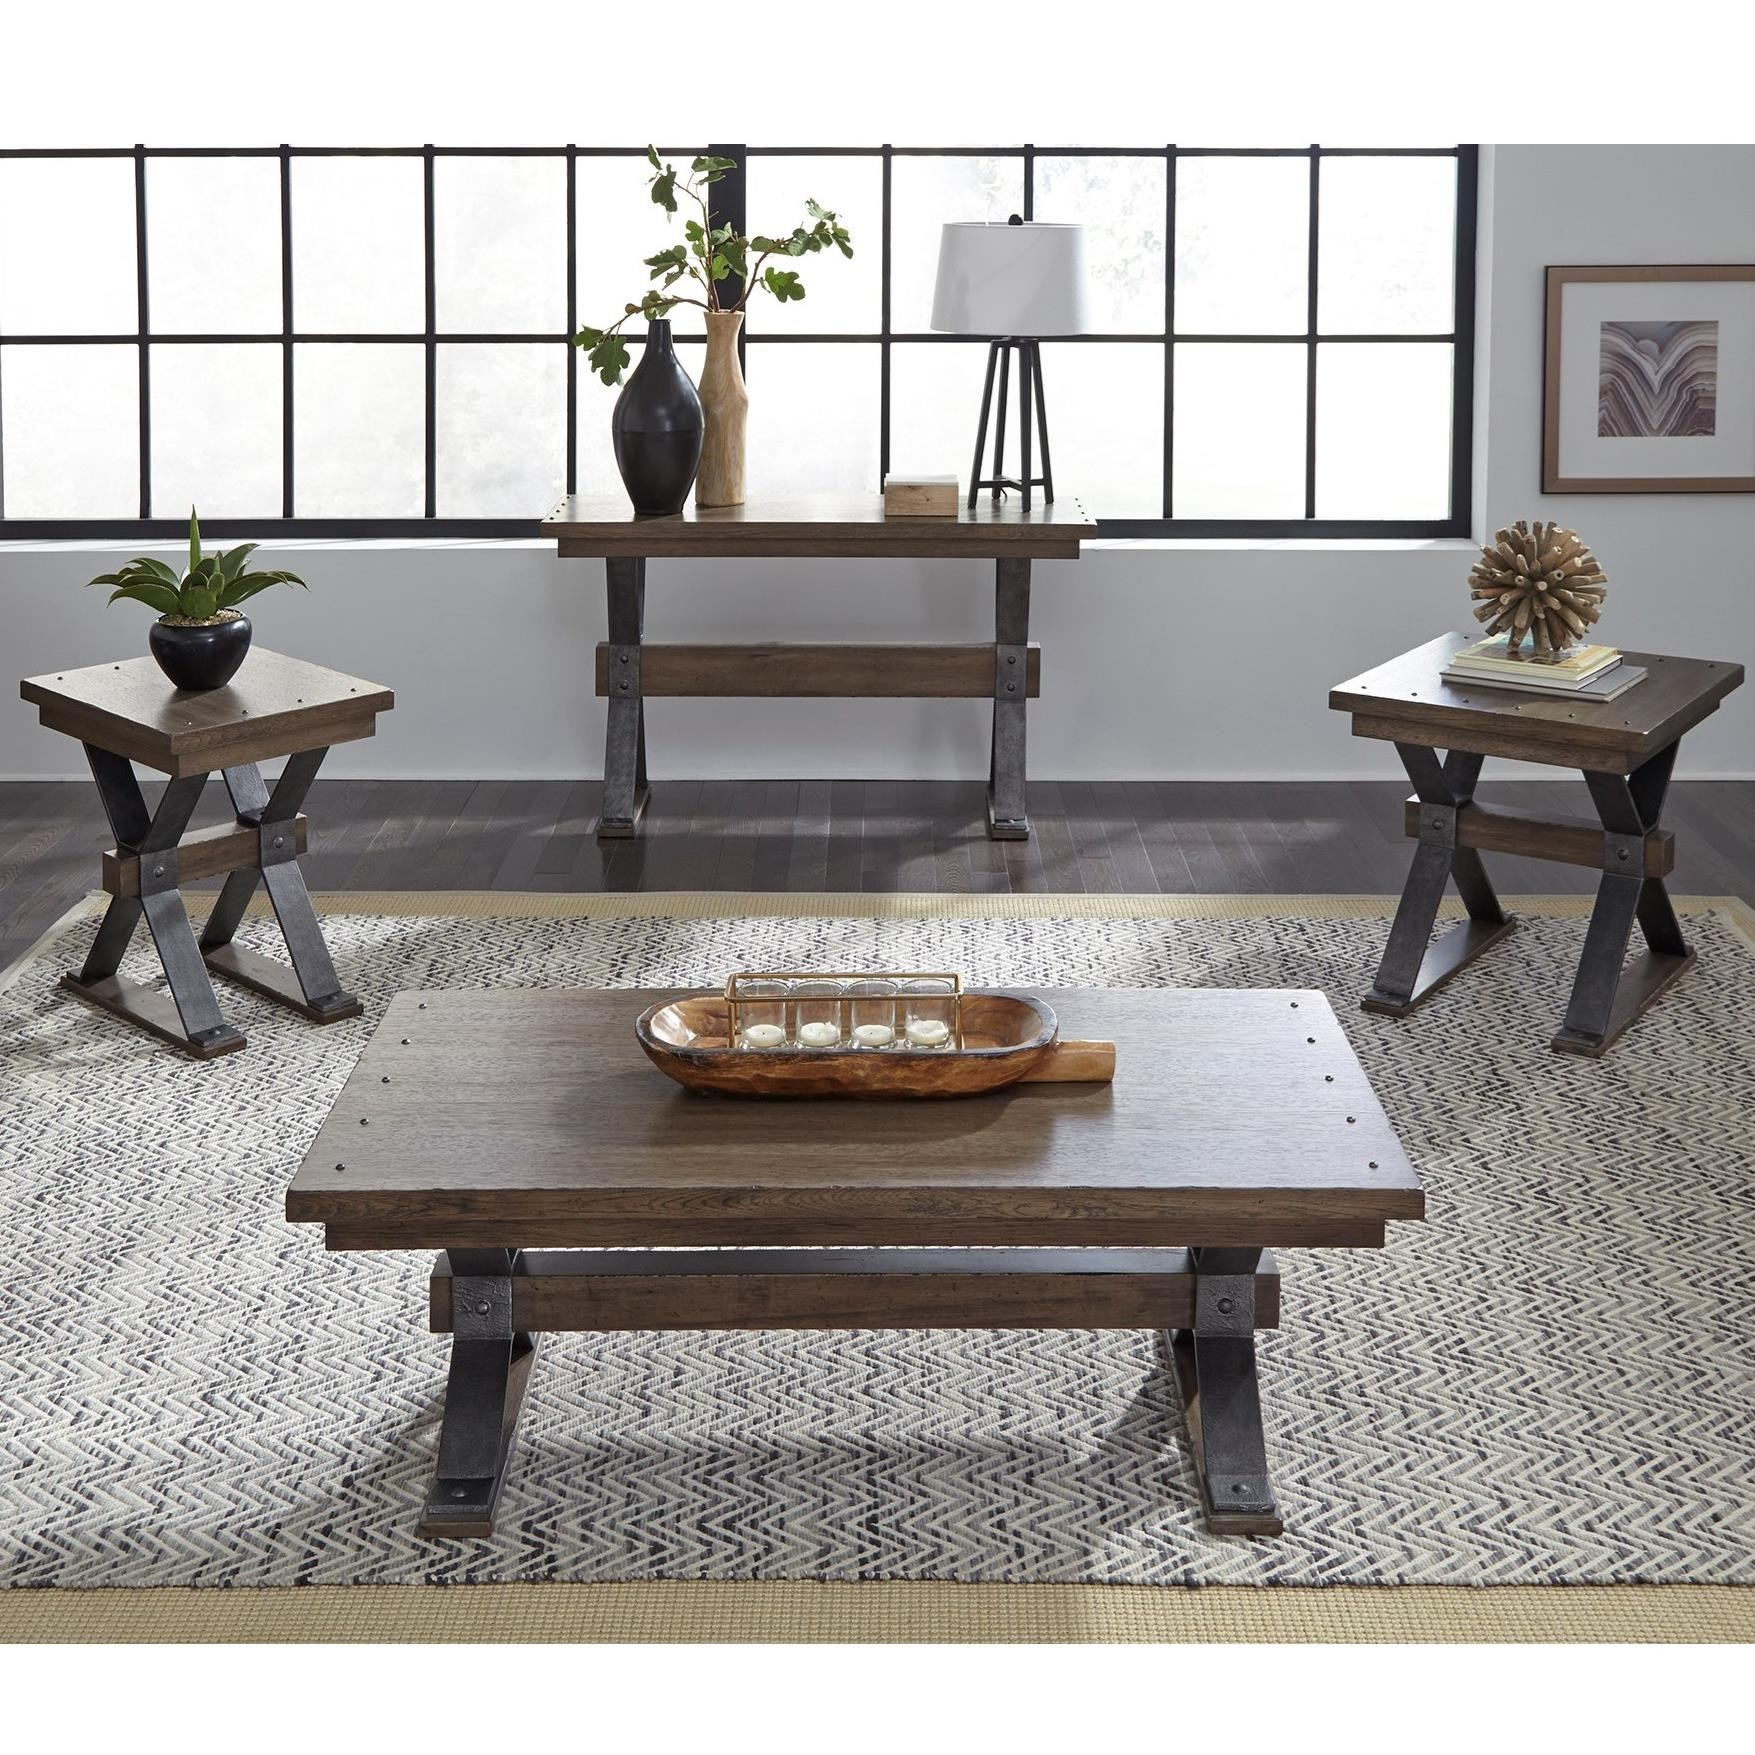 Sonoma Road Occasional Table Group by Sarah Randolph Designs at Virginia Furniture Market